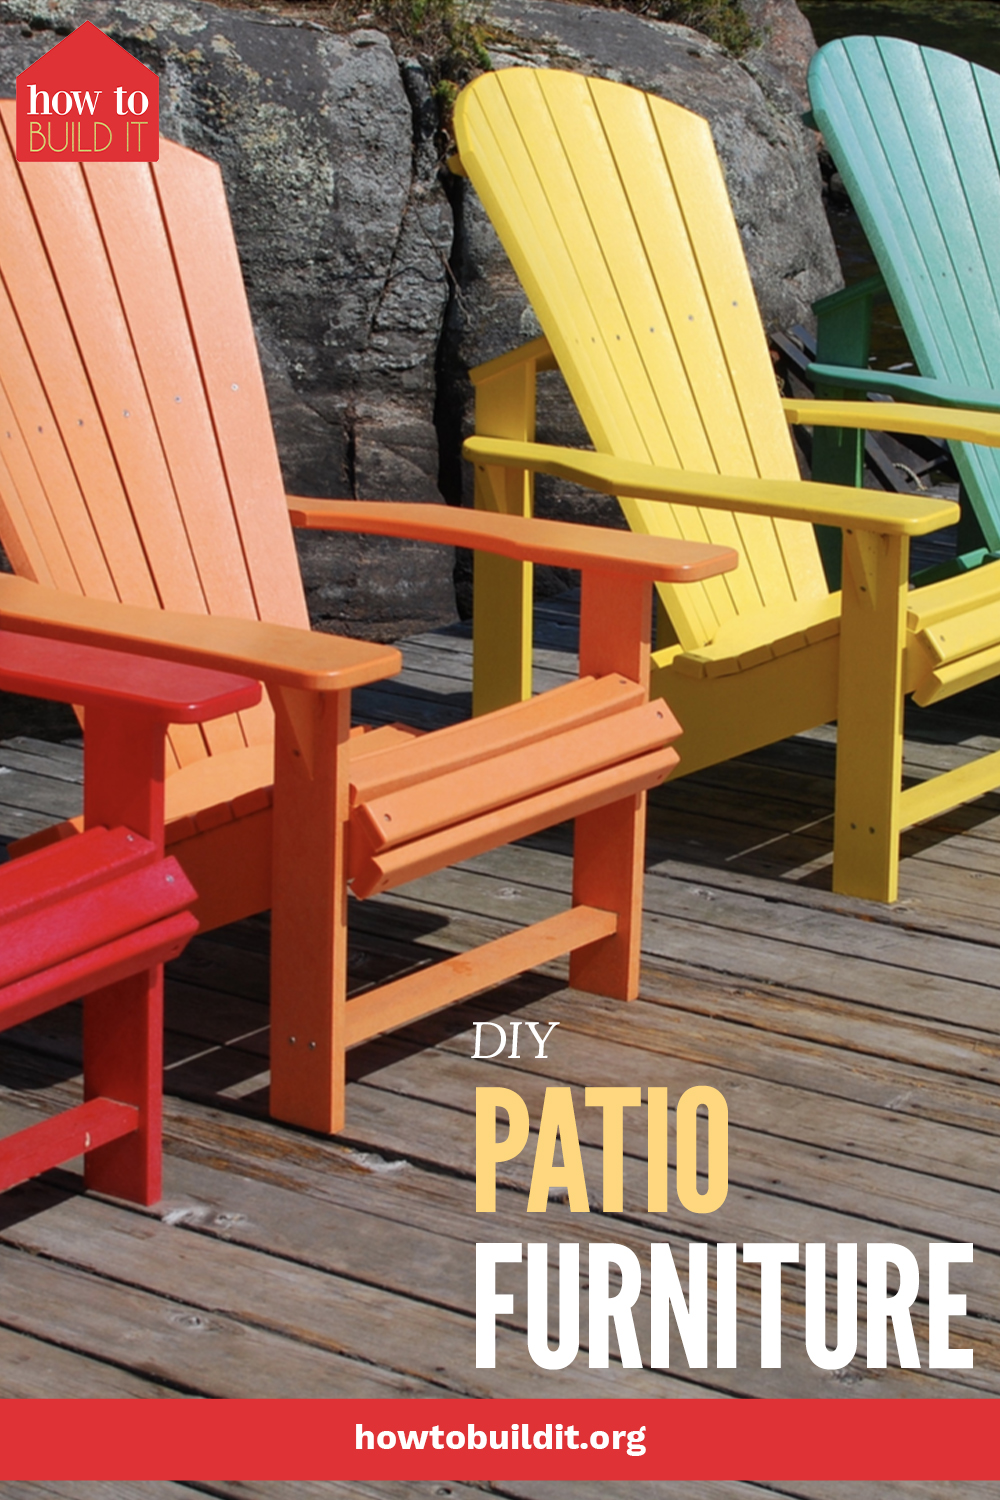 Though it might seem intimidating, just about anyone can make their own outdoor furniture. It's true, all of the tutorials on this list are easy enough for any level of DIYer. Which one will you try first? #patiofurniture #outdoor #howtobuilditblog